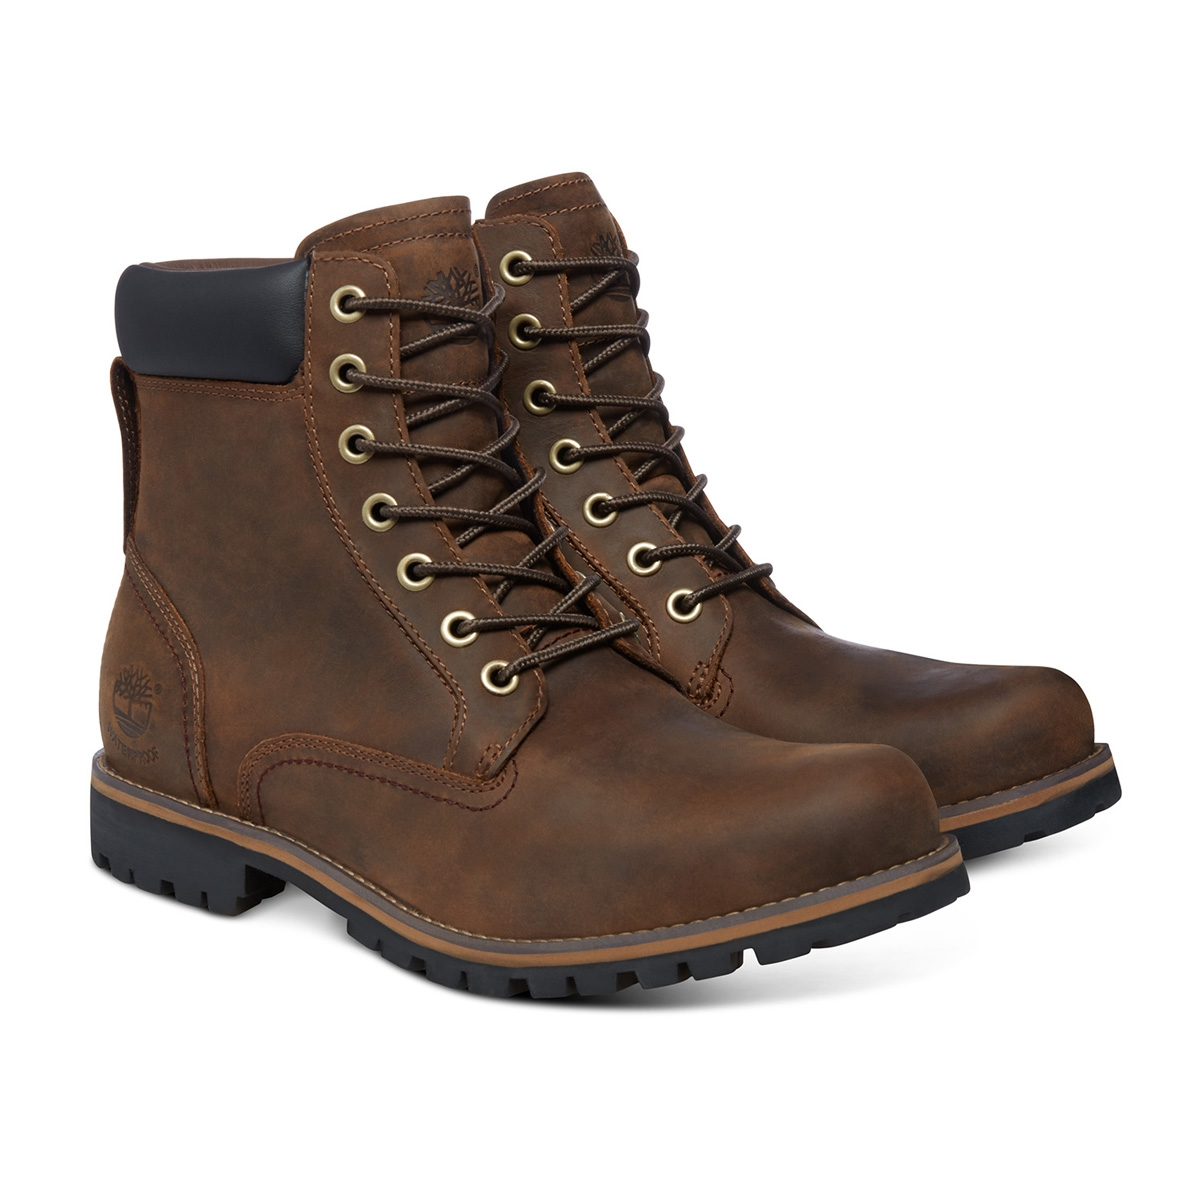 Les Earthkeepers Hommes Timberland Chaussure Robuste Brun OVfKg